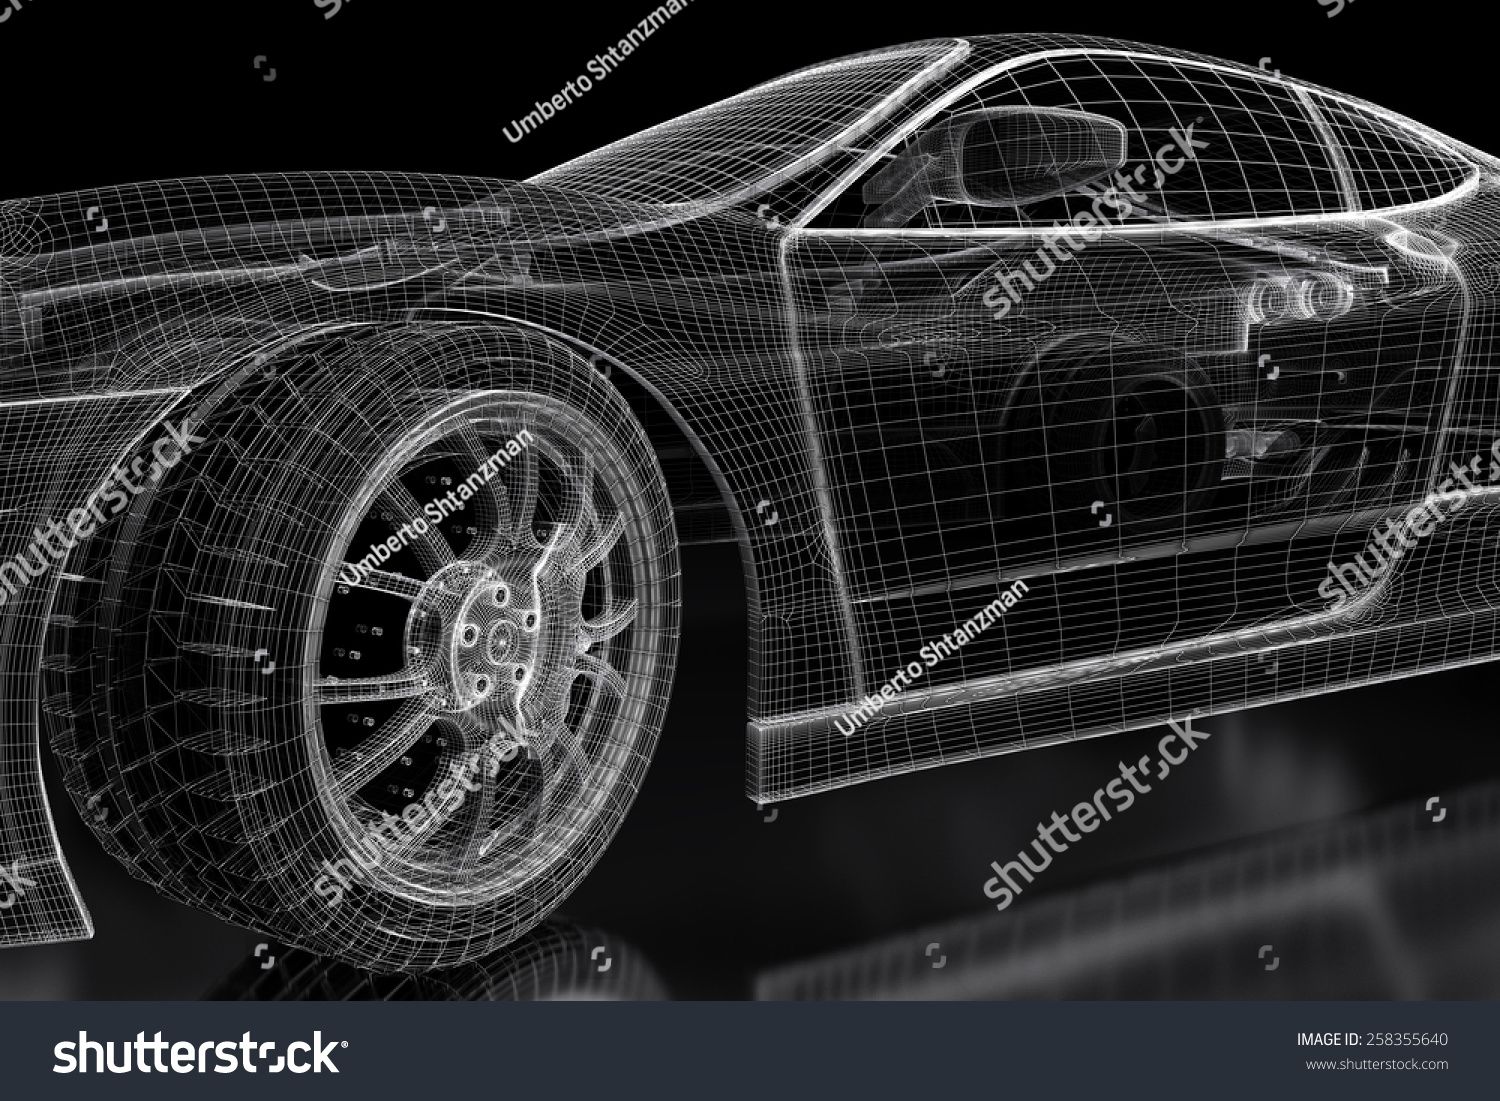 Car vehicle 3d blueprint mesh model on a black background 3d car vehicle 3d blueprint mesh model on a black background 3d rendered image ez canvas malvernweather Gallery